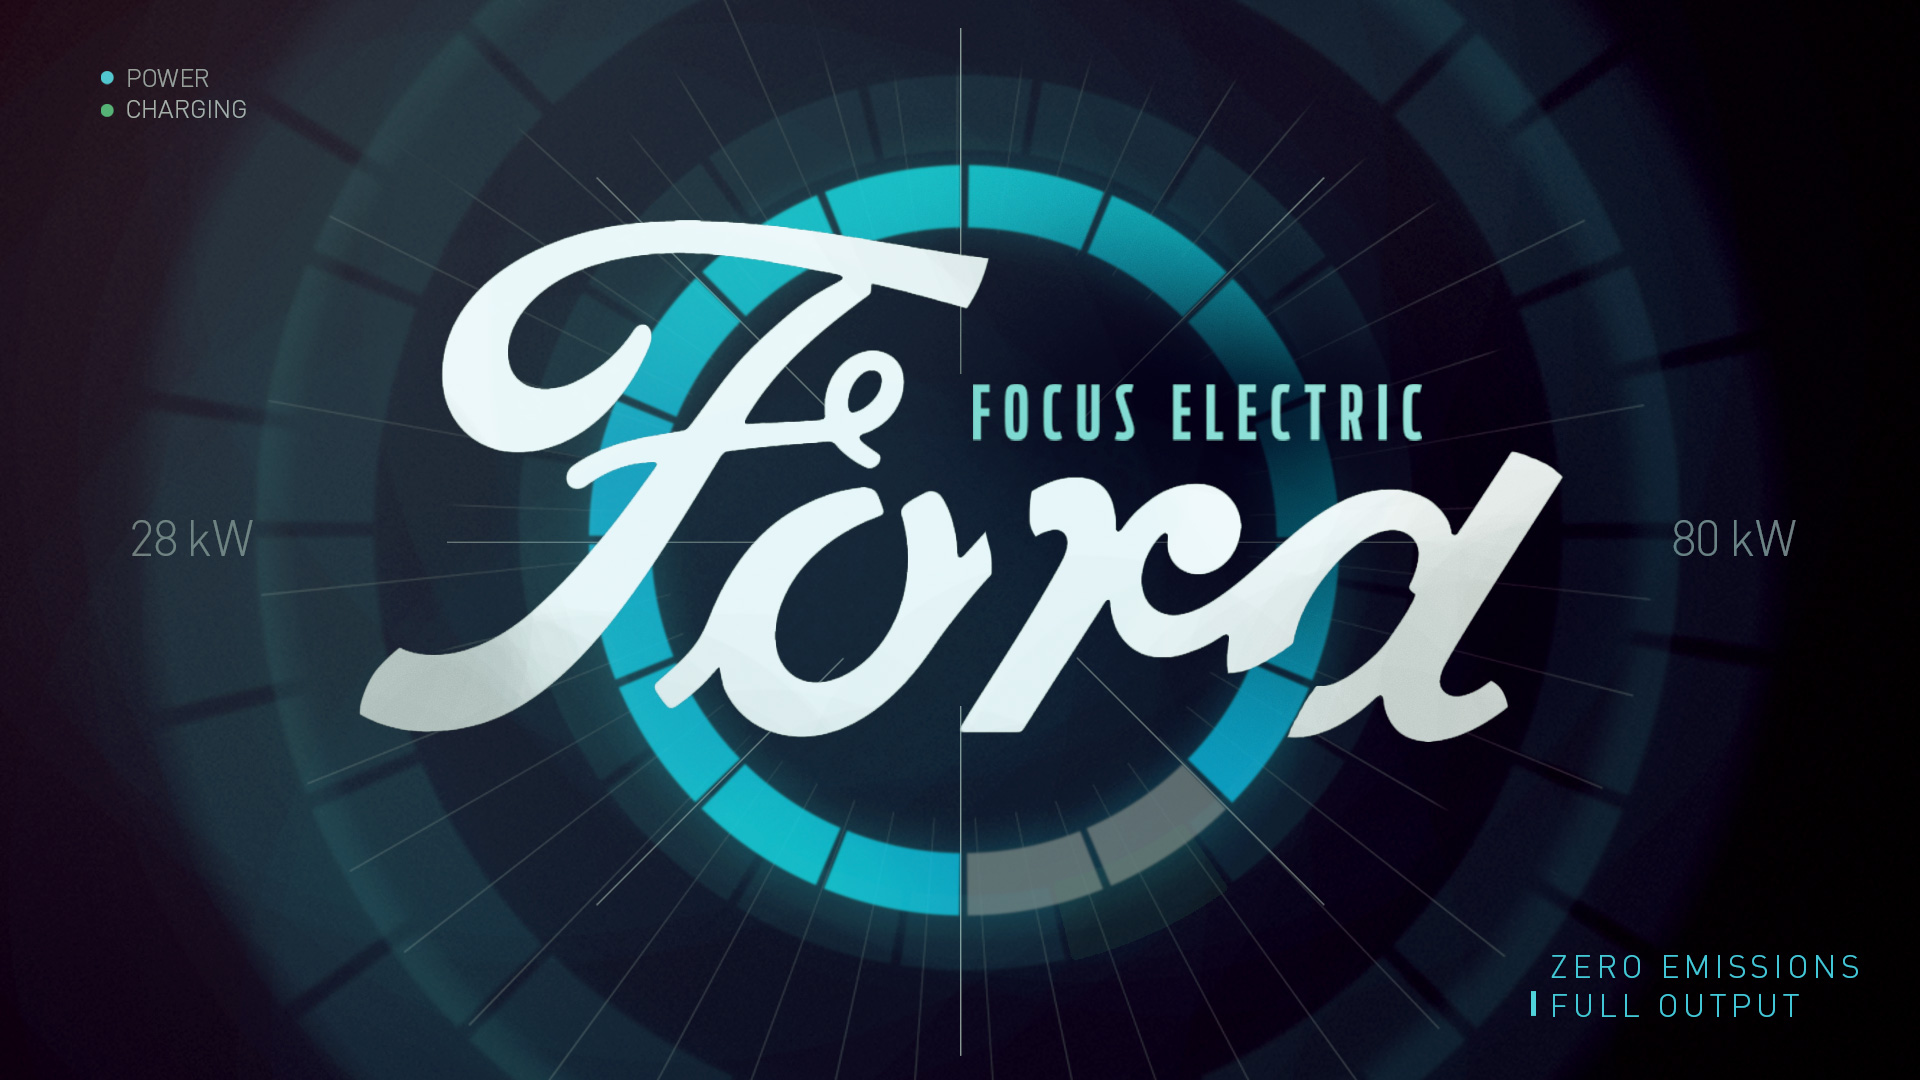 FordFocus Electric